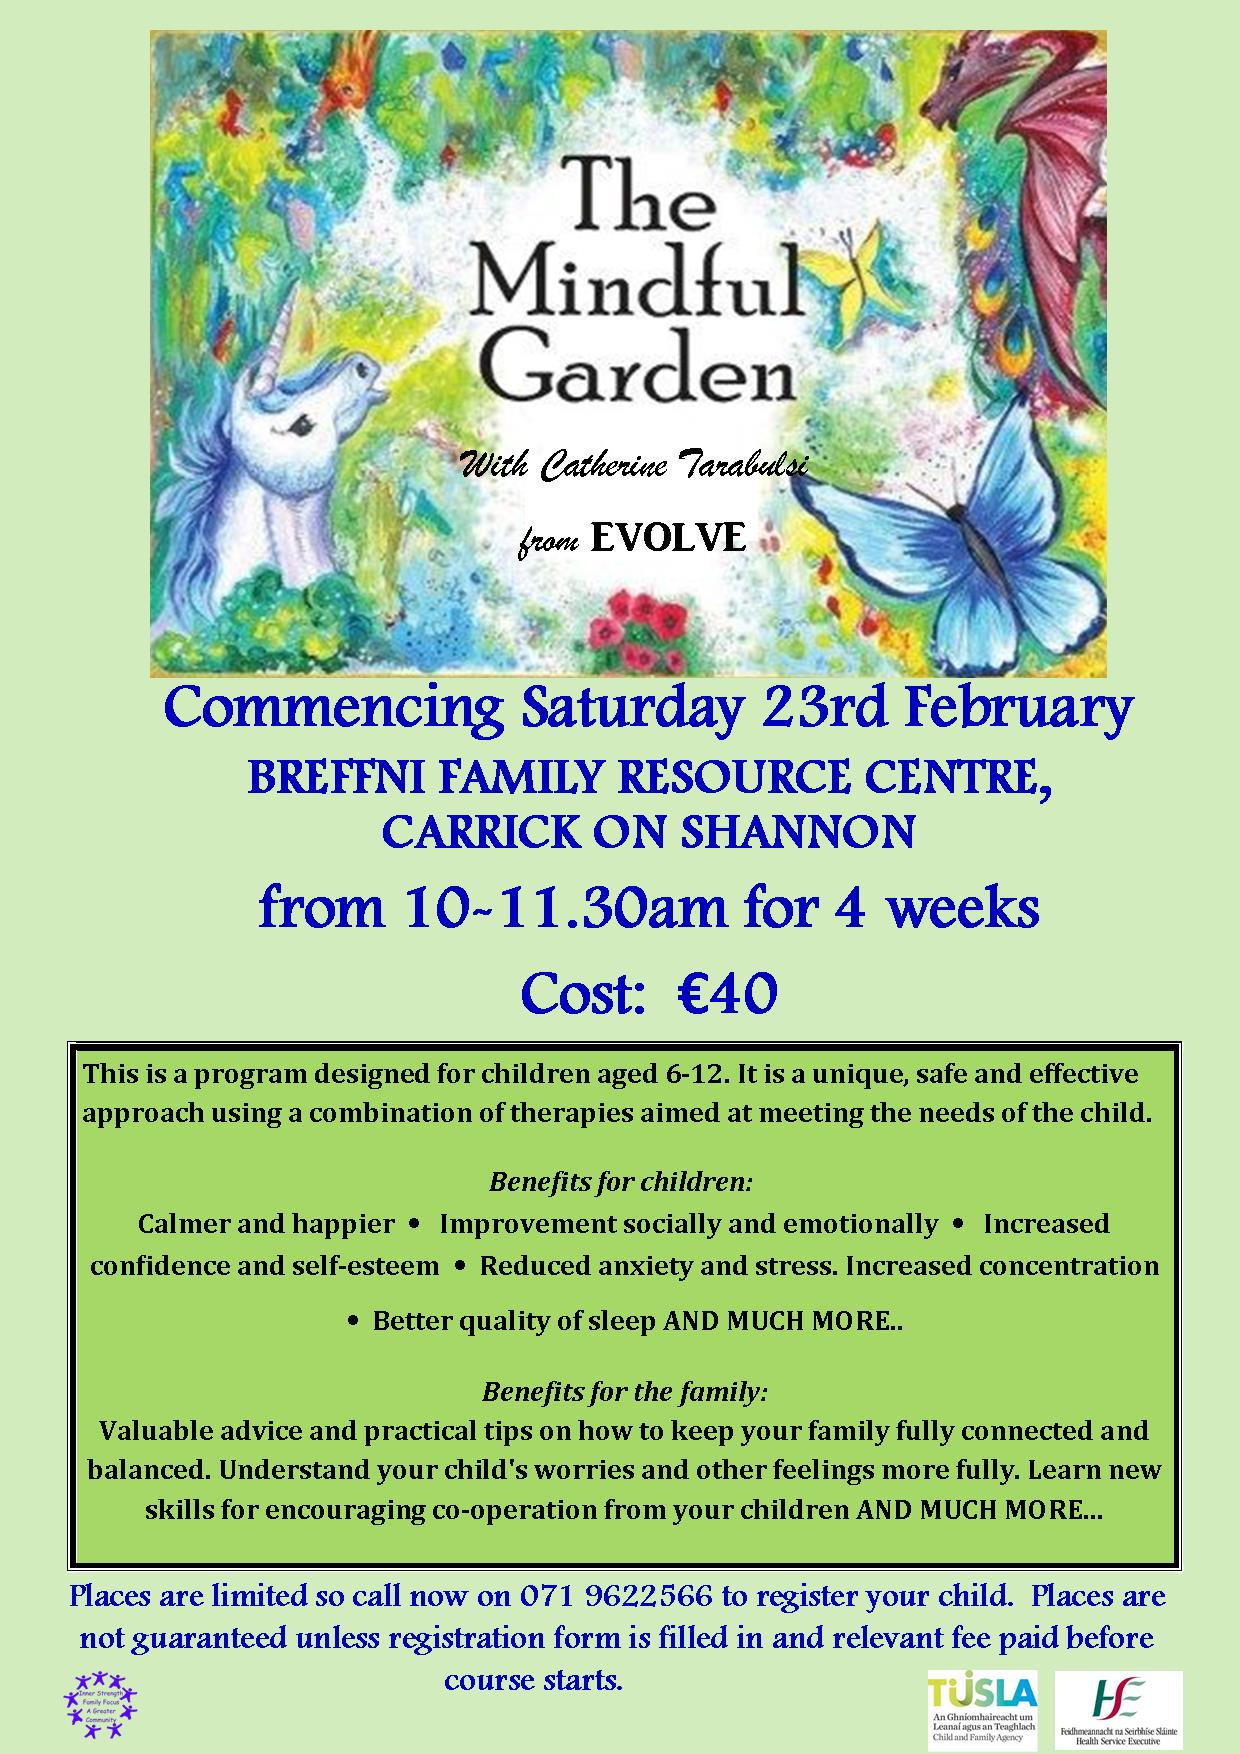 MyCarrick Event | Breffni Family Resource Centre : The Mindful Garden